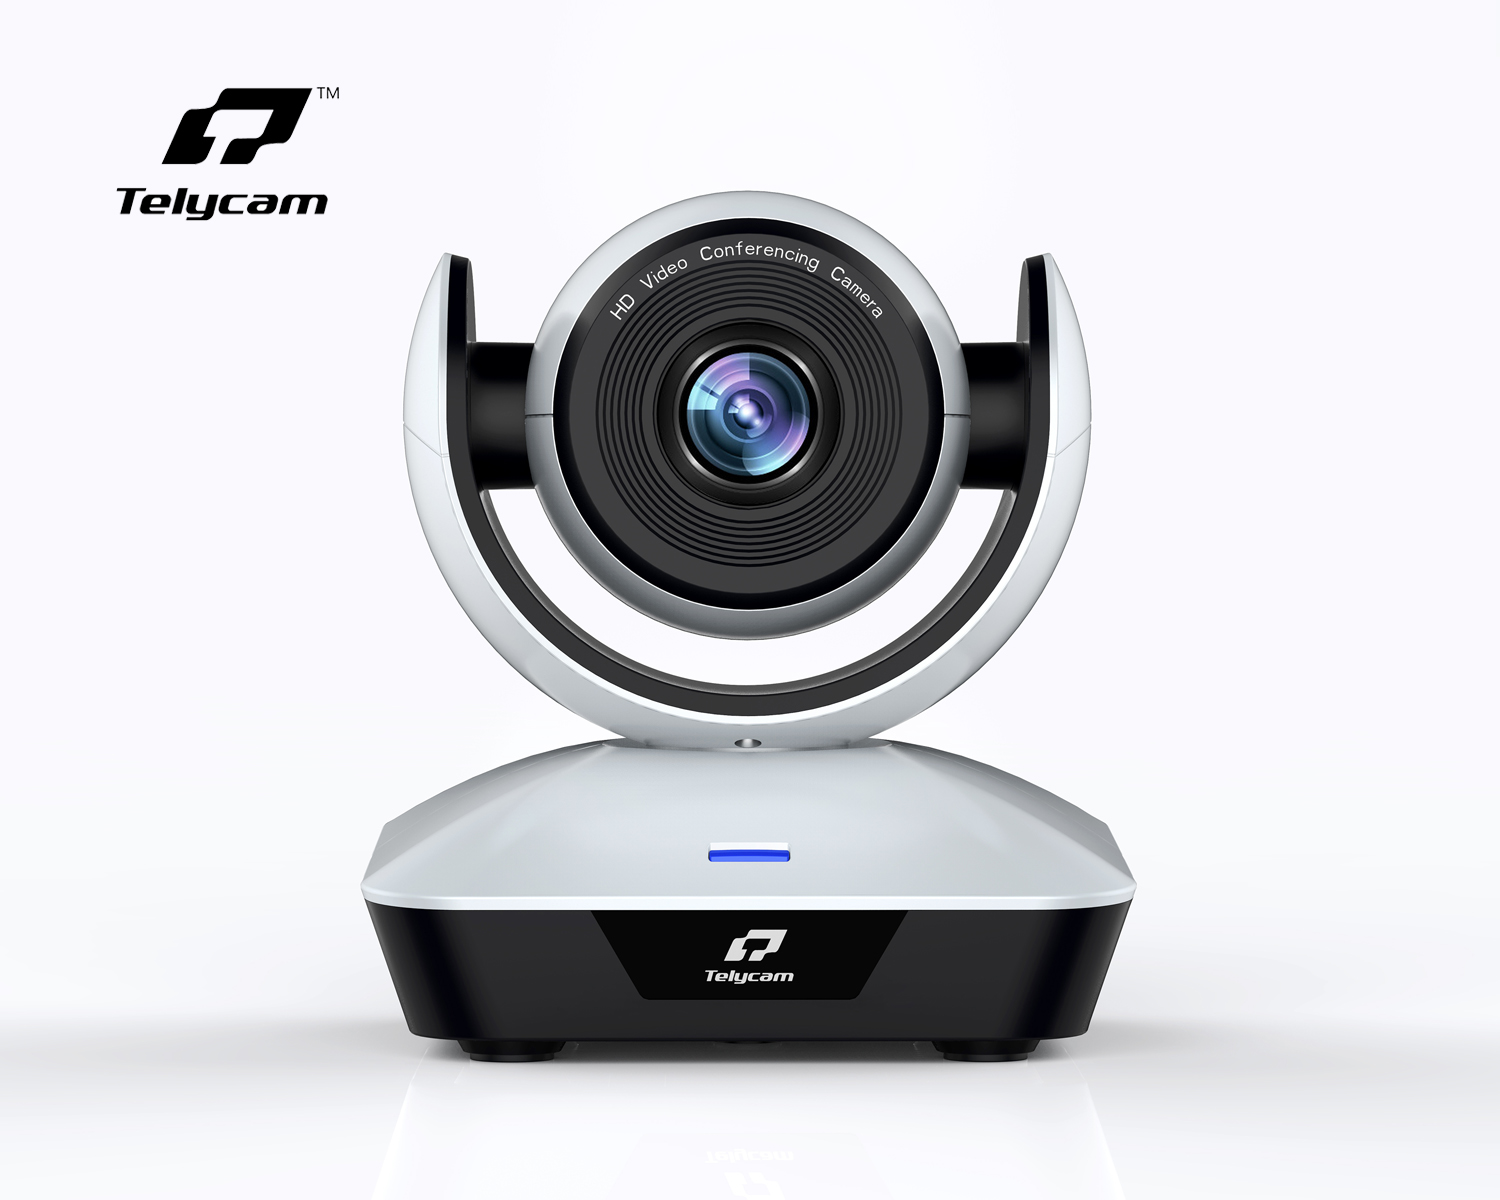 Camera Telycam USB 3.0 TLC-1000-U3S